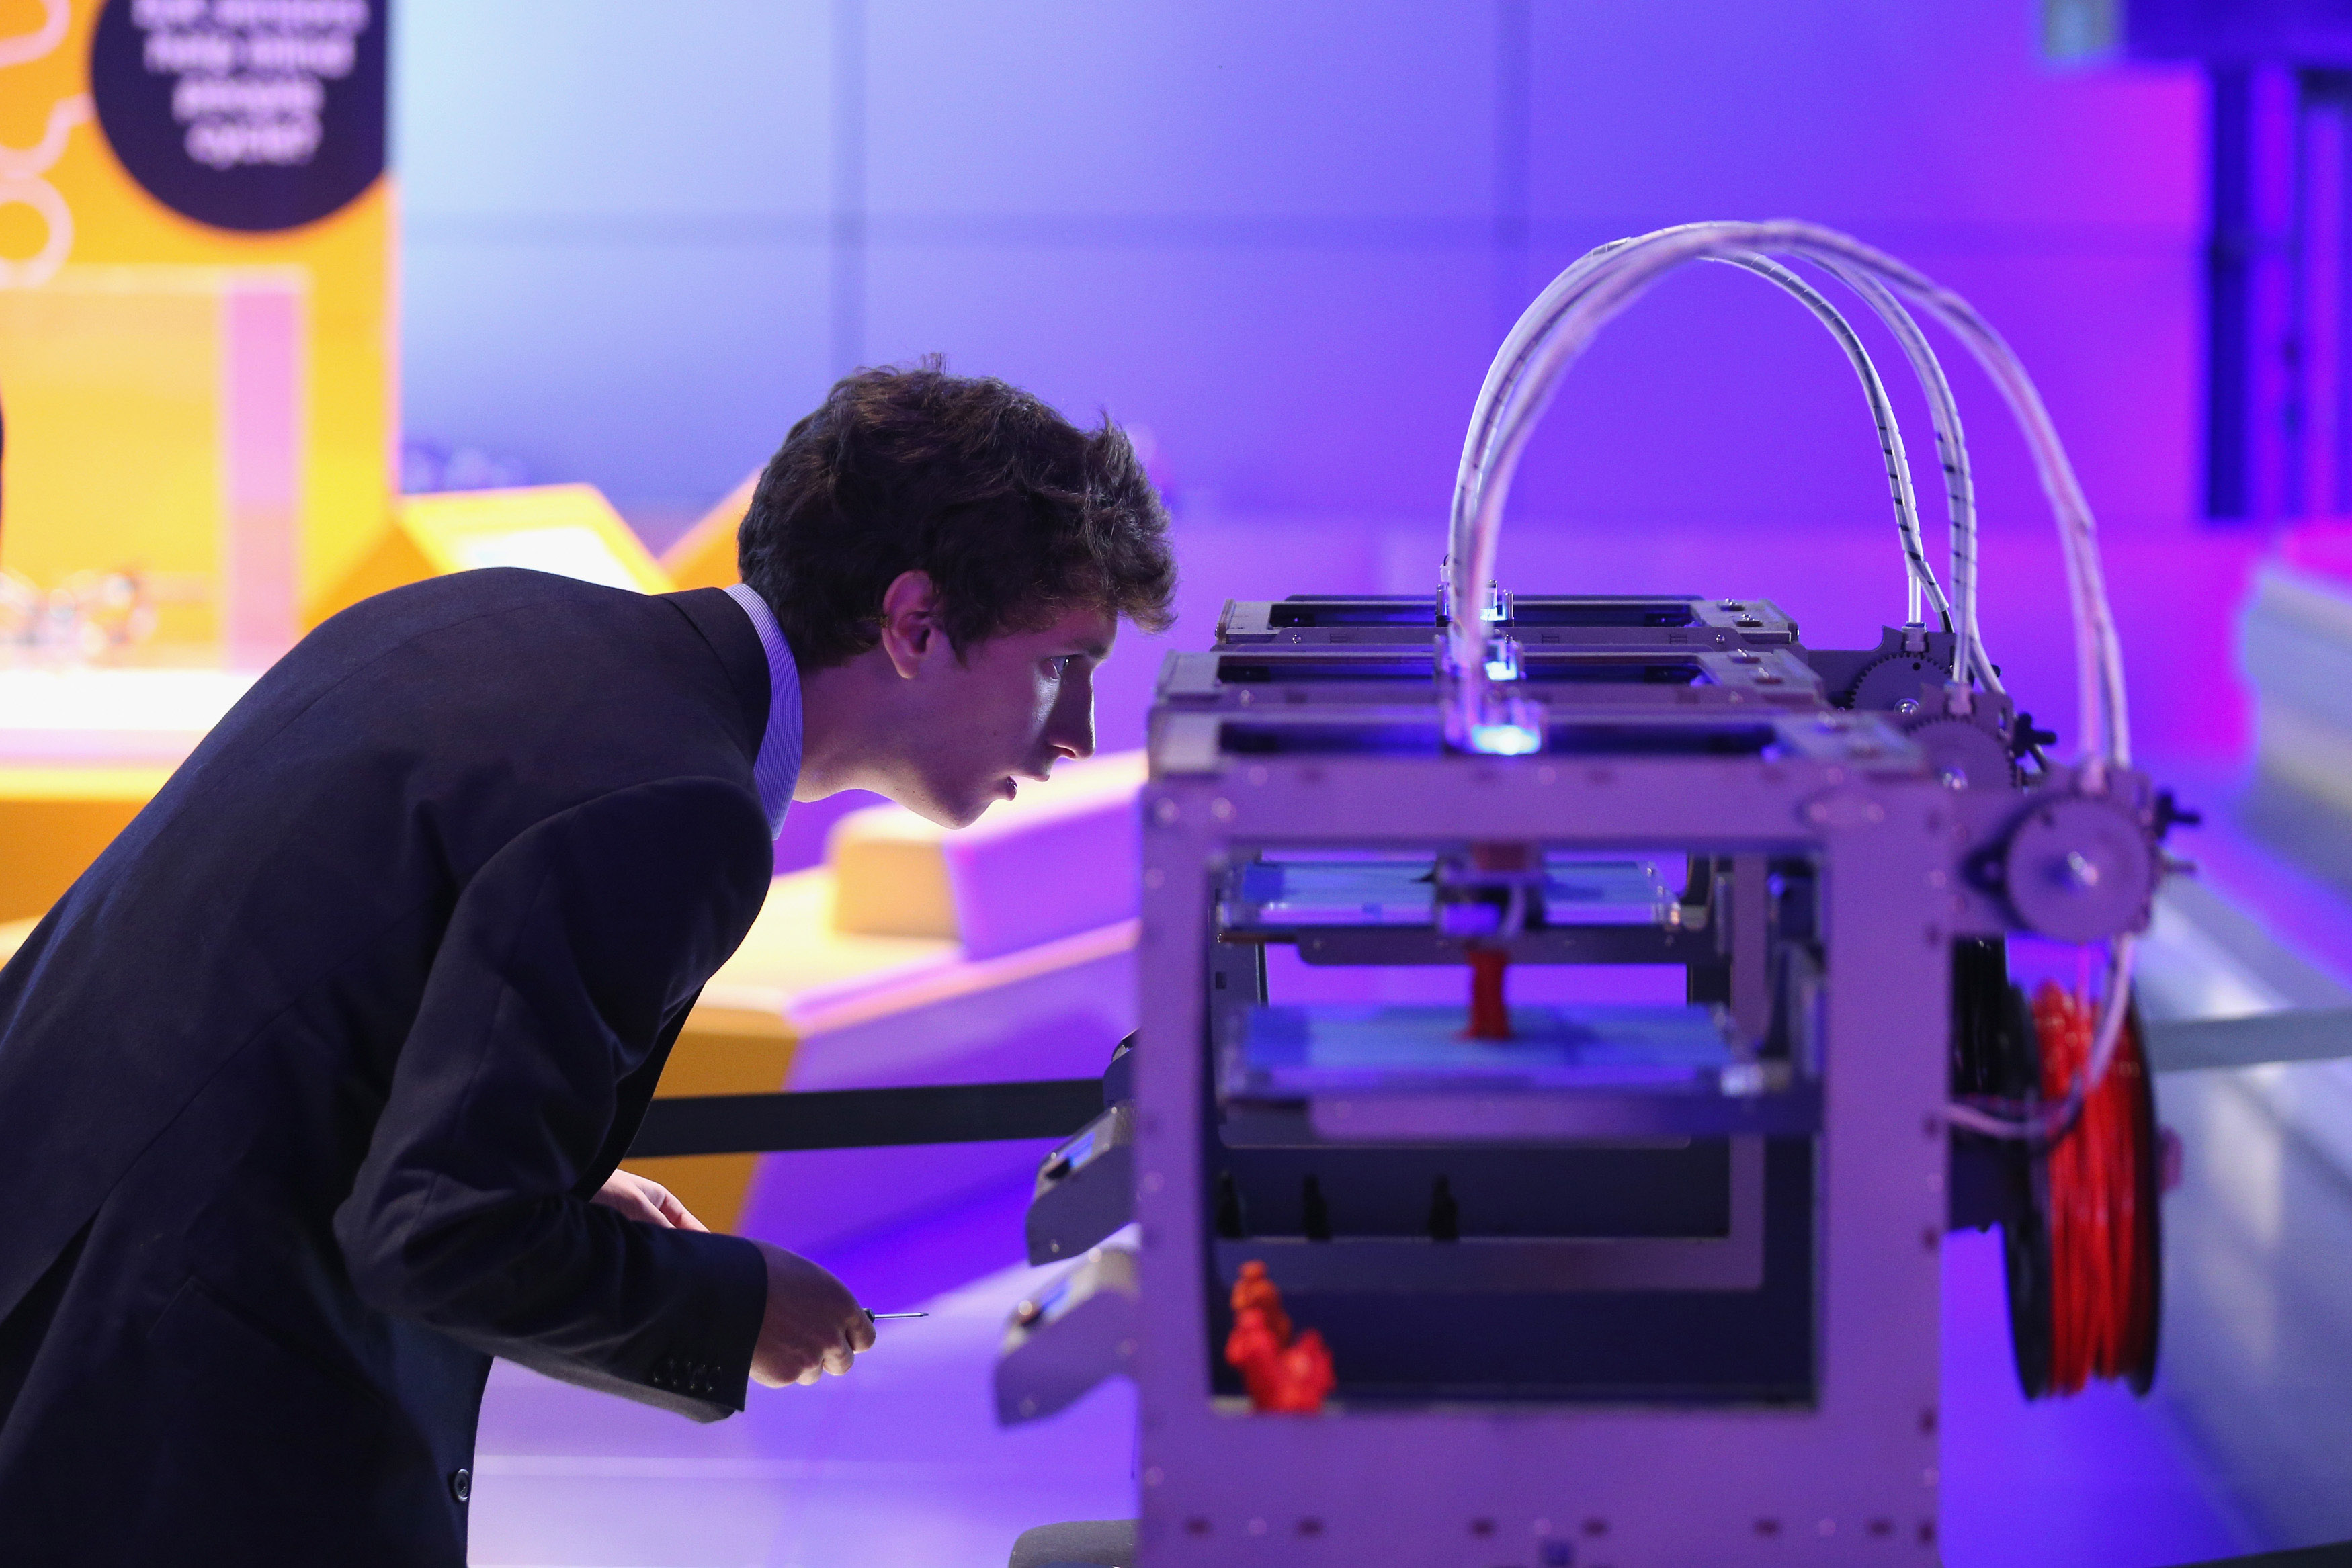 D Printing Exhibition London Science Museum : The best free exhibitions in london right now london evening